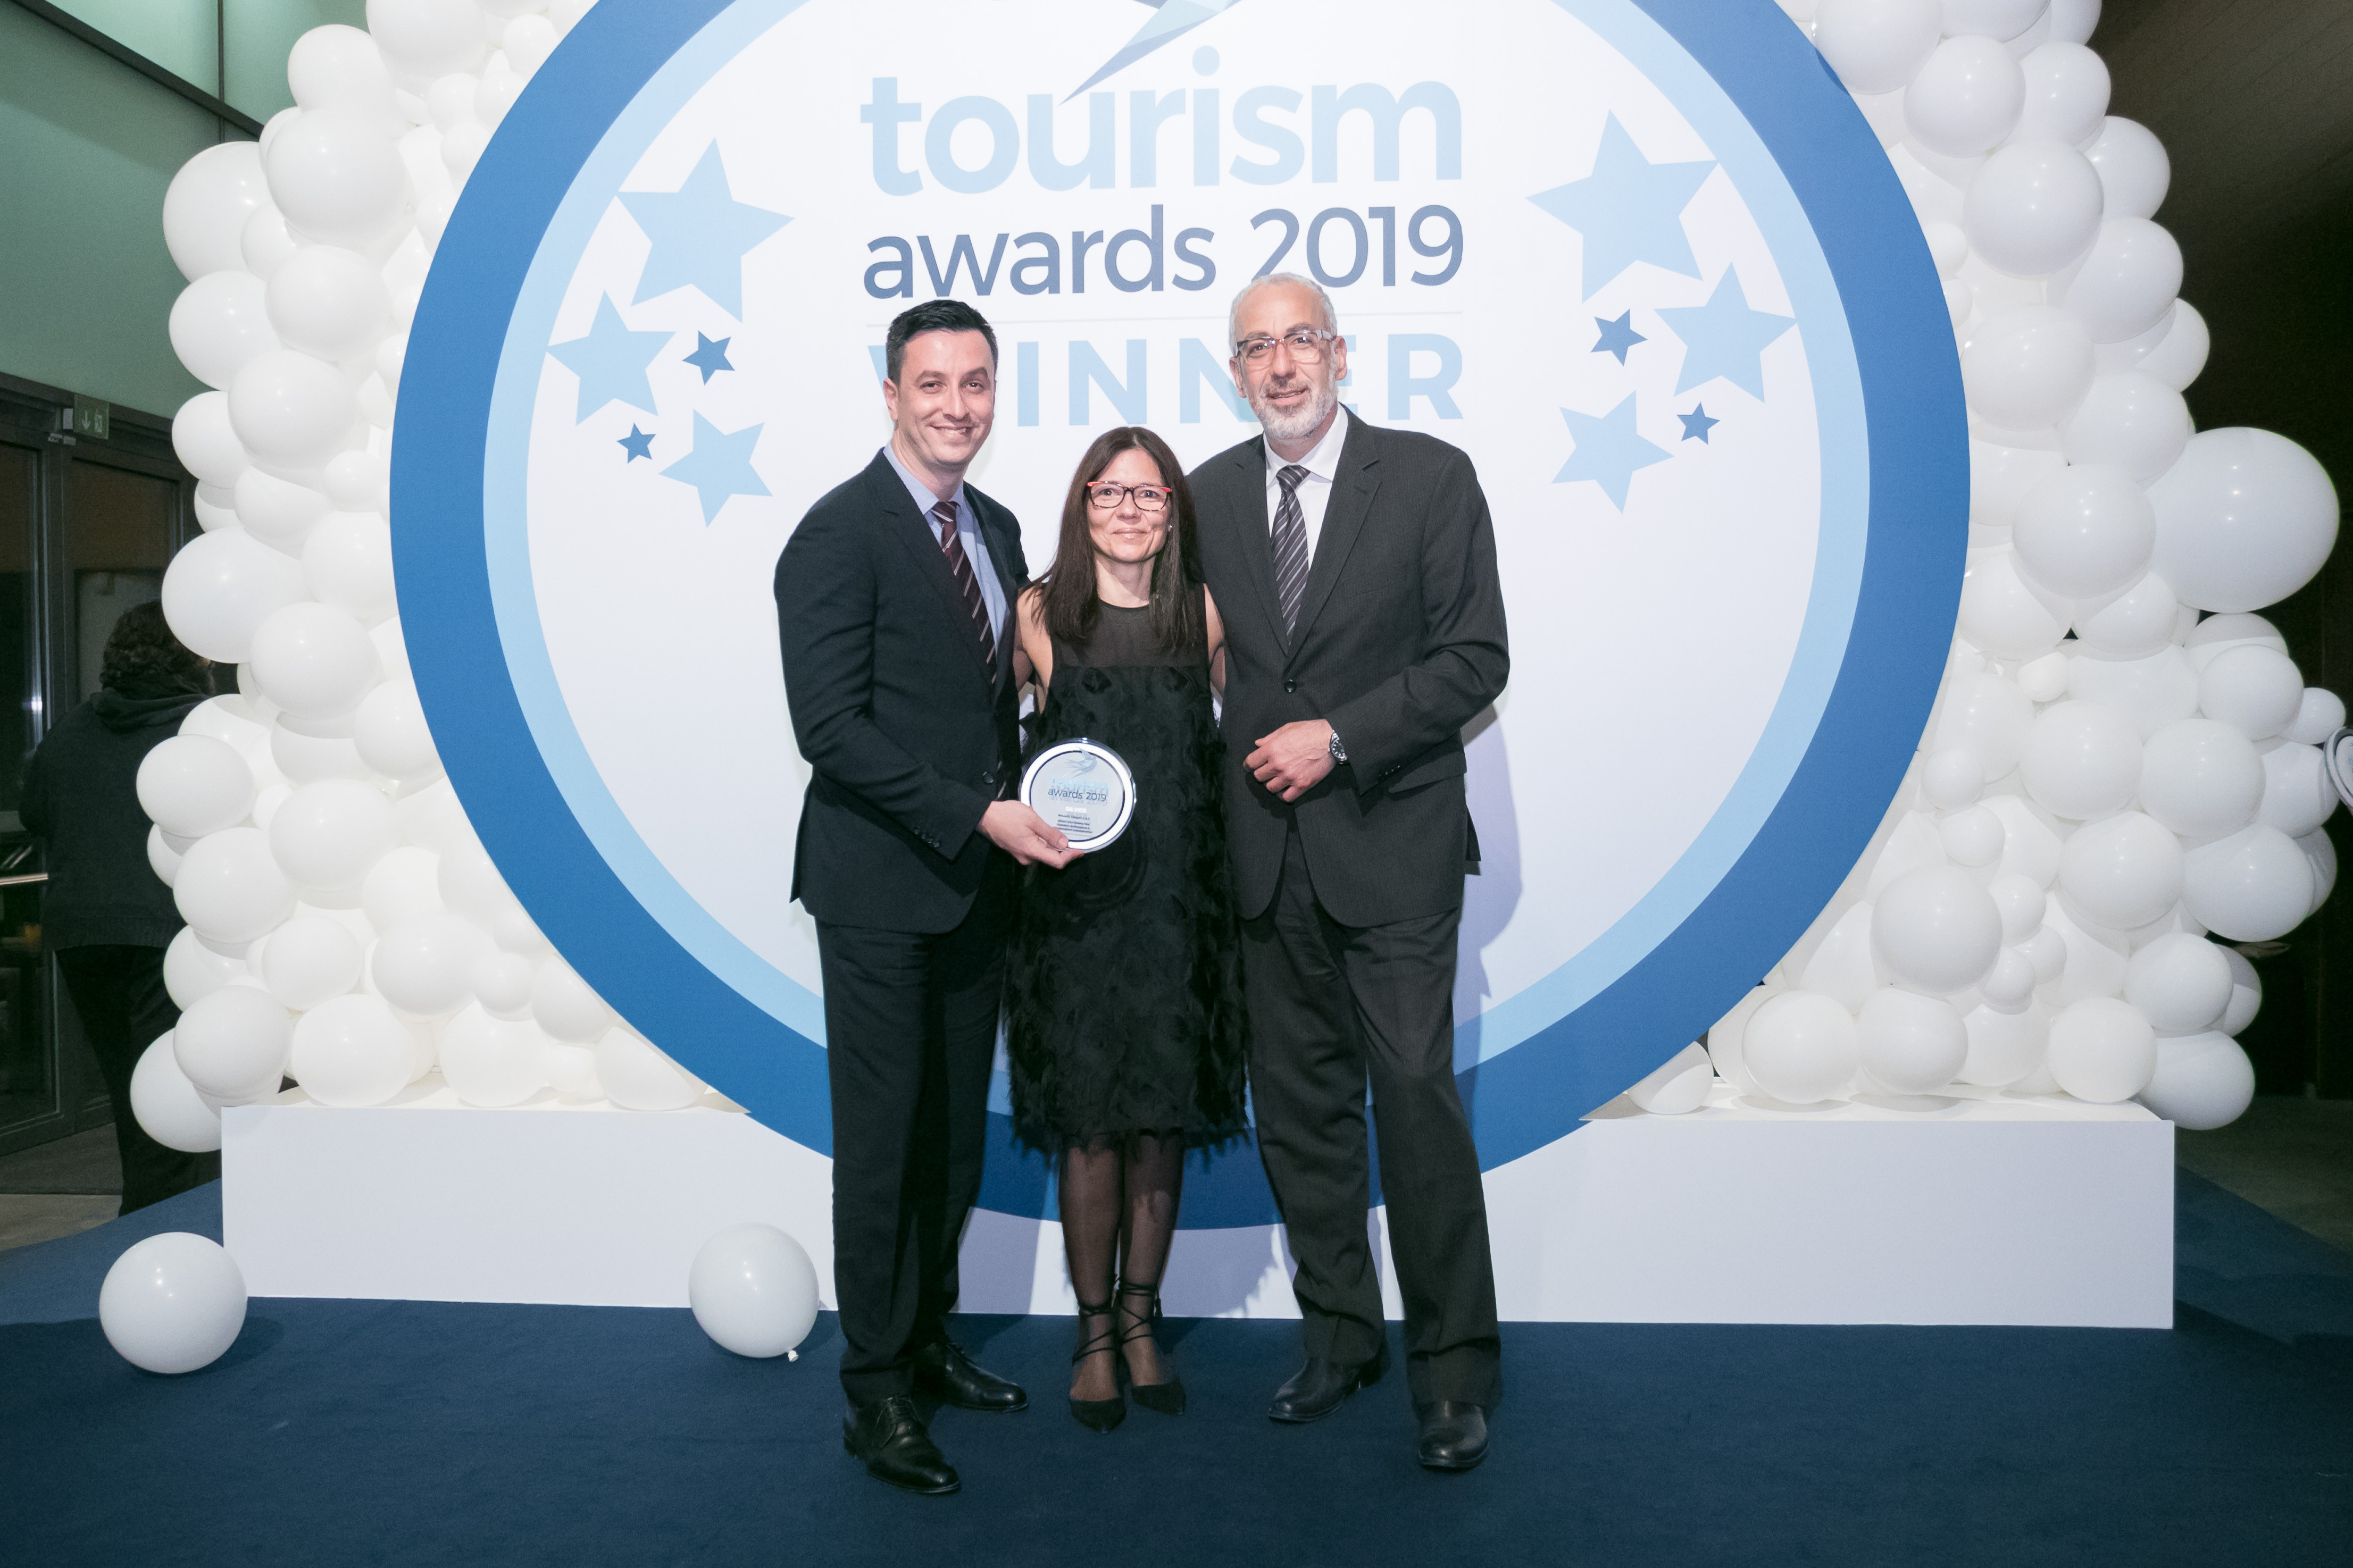 Wedia - Minoan Lines - Tourism Awards 2019